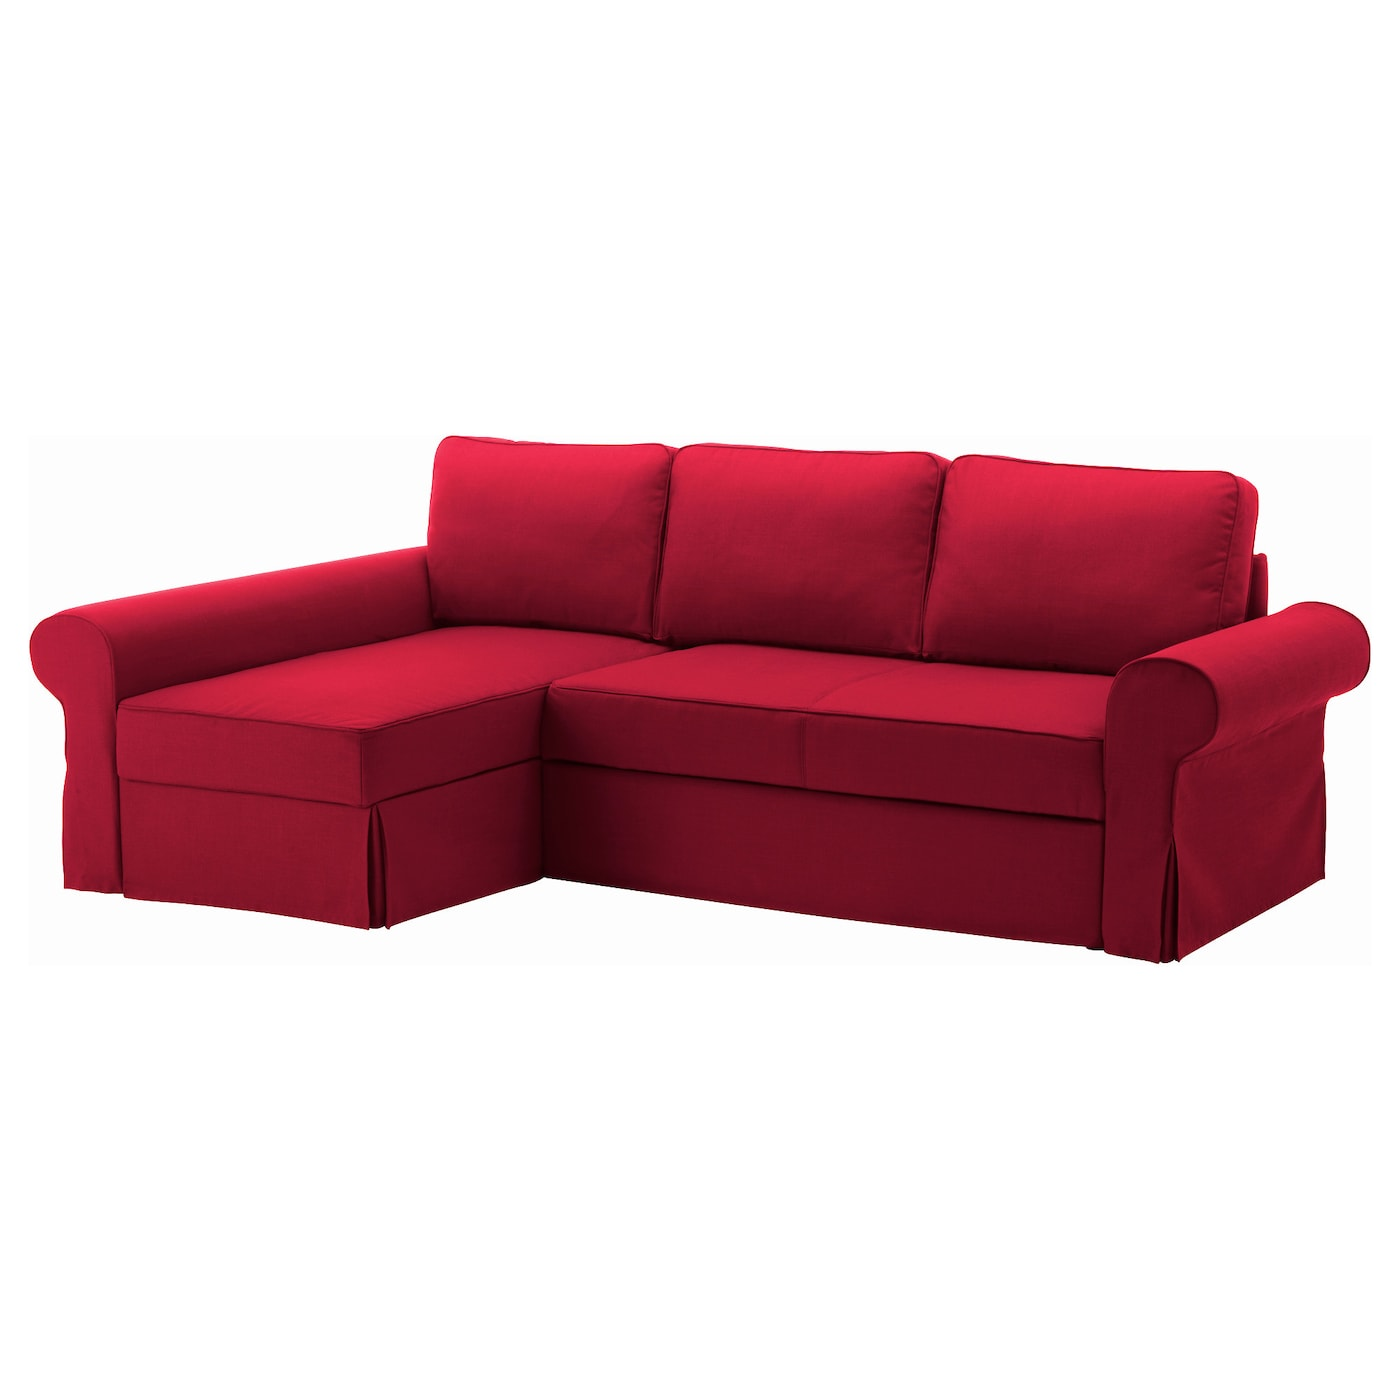 backabro sofa bed with chaise longue nordvalla red ikea. Black Bedroom Furniture Sets. Home Design Ideas